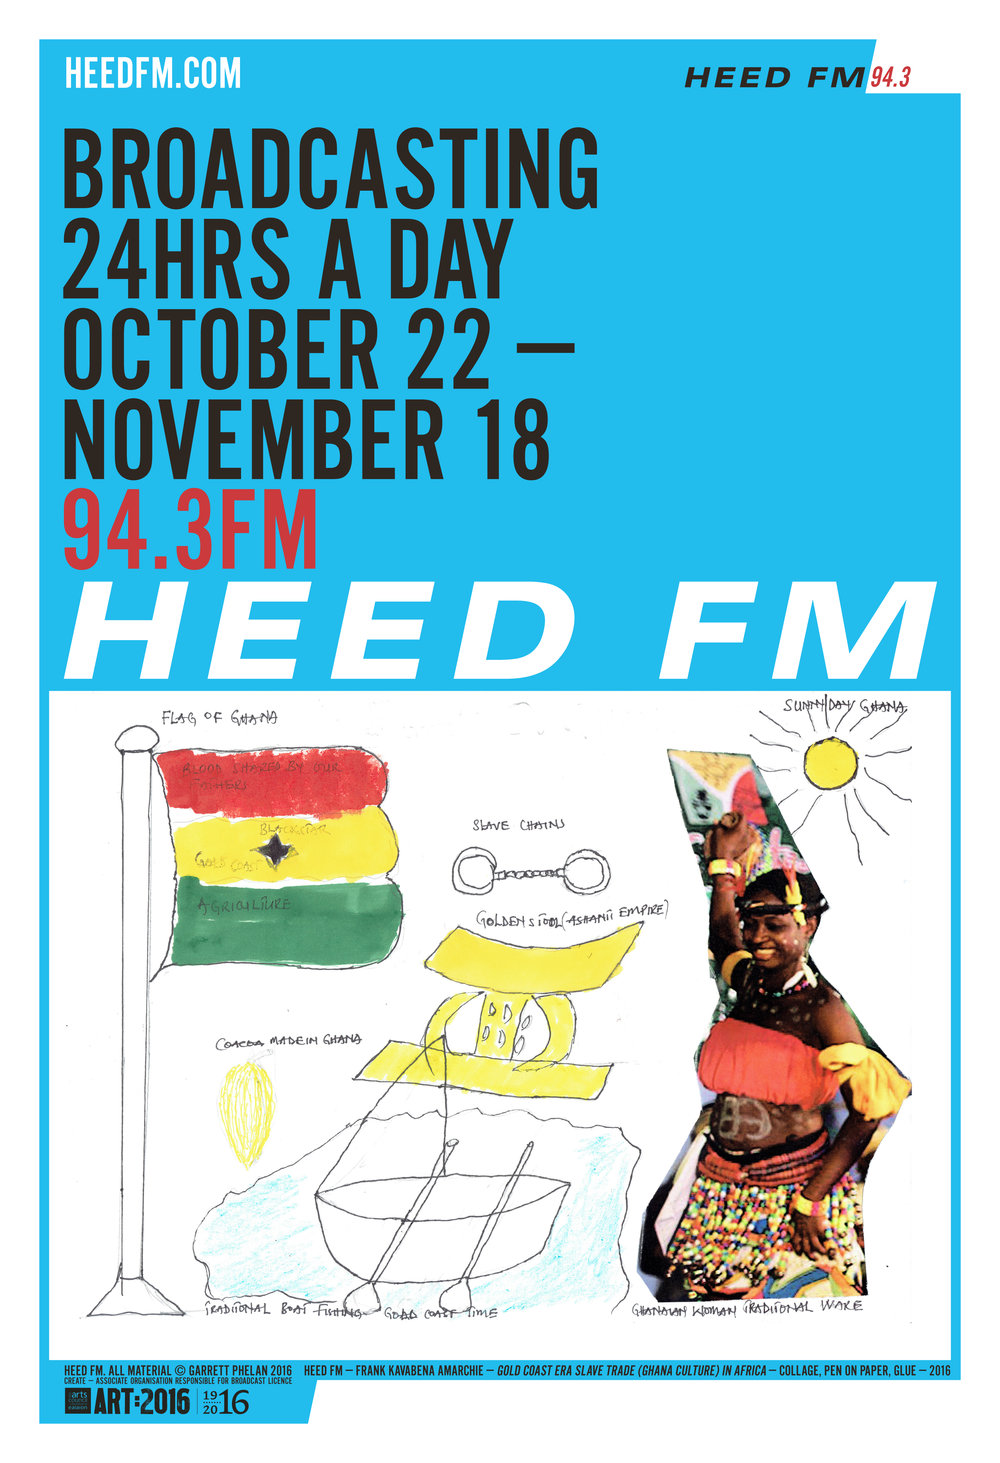 heed fm 4 sheets artwork-14.jpg